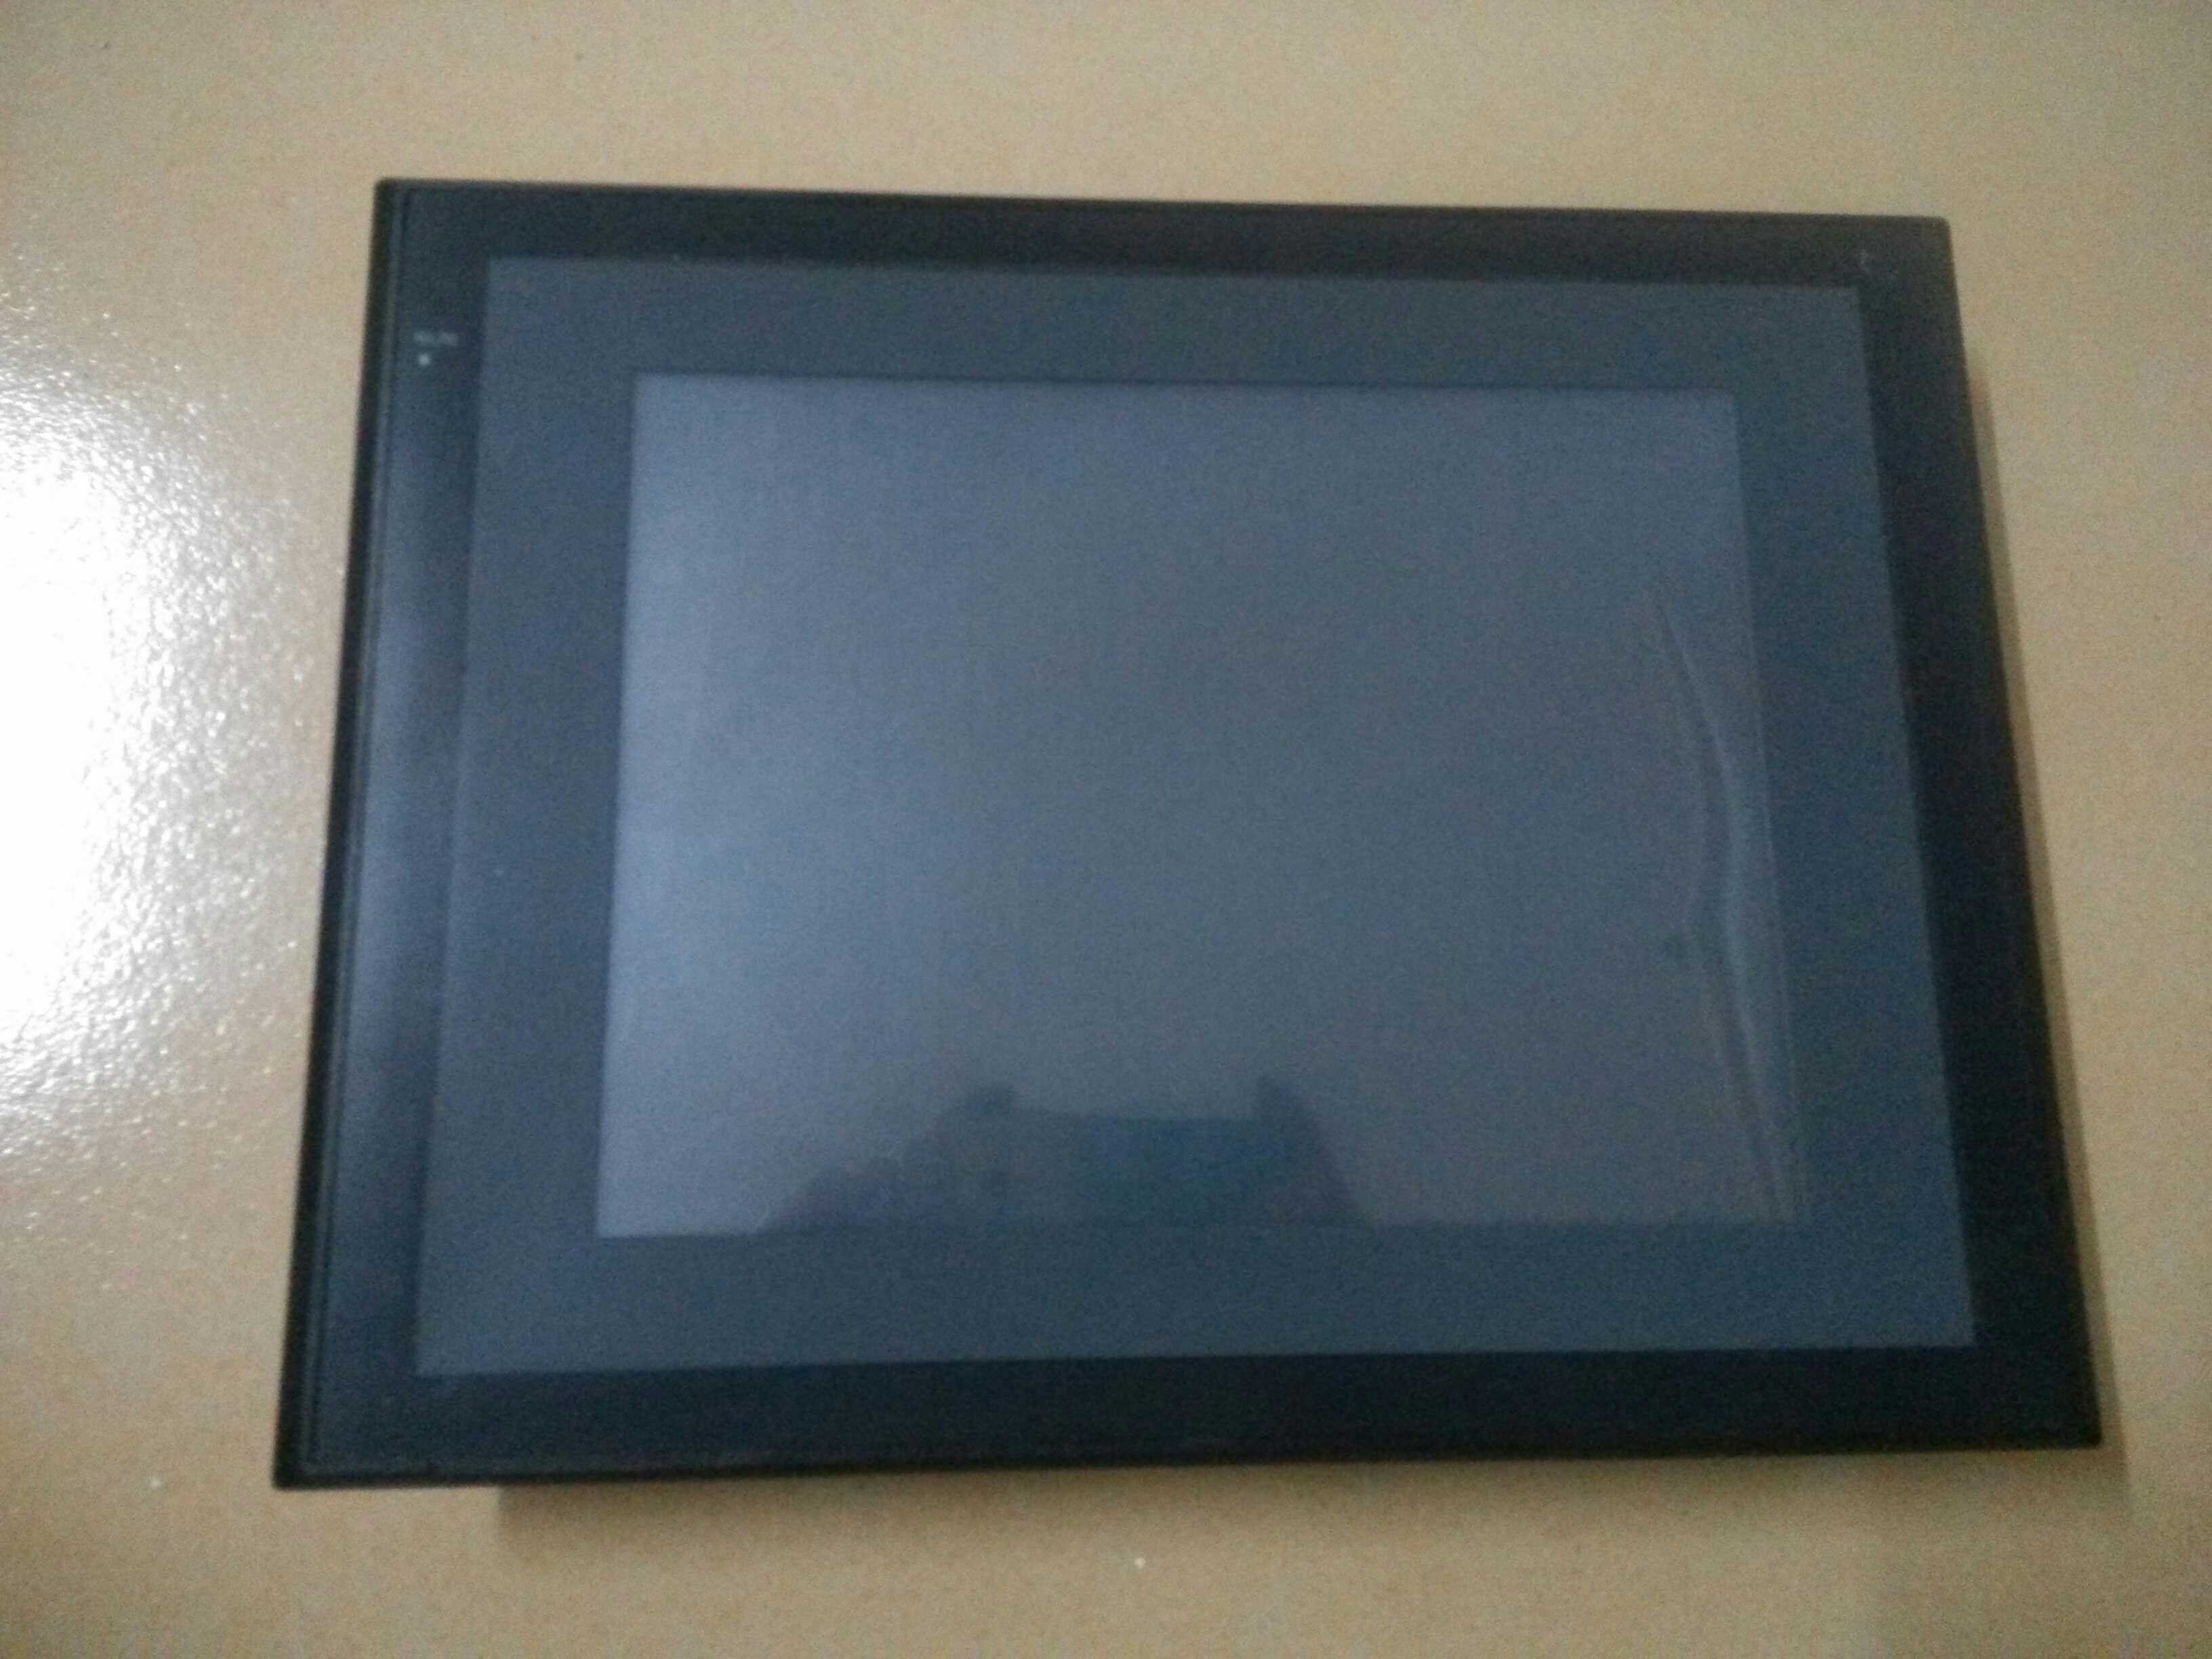 NS10-TV01B-V2 OMRON HMI TOUCH SCREEN NEW and ORIGINAL